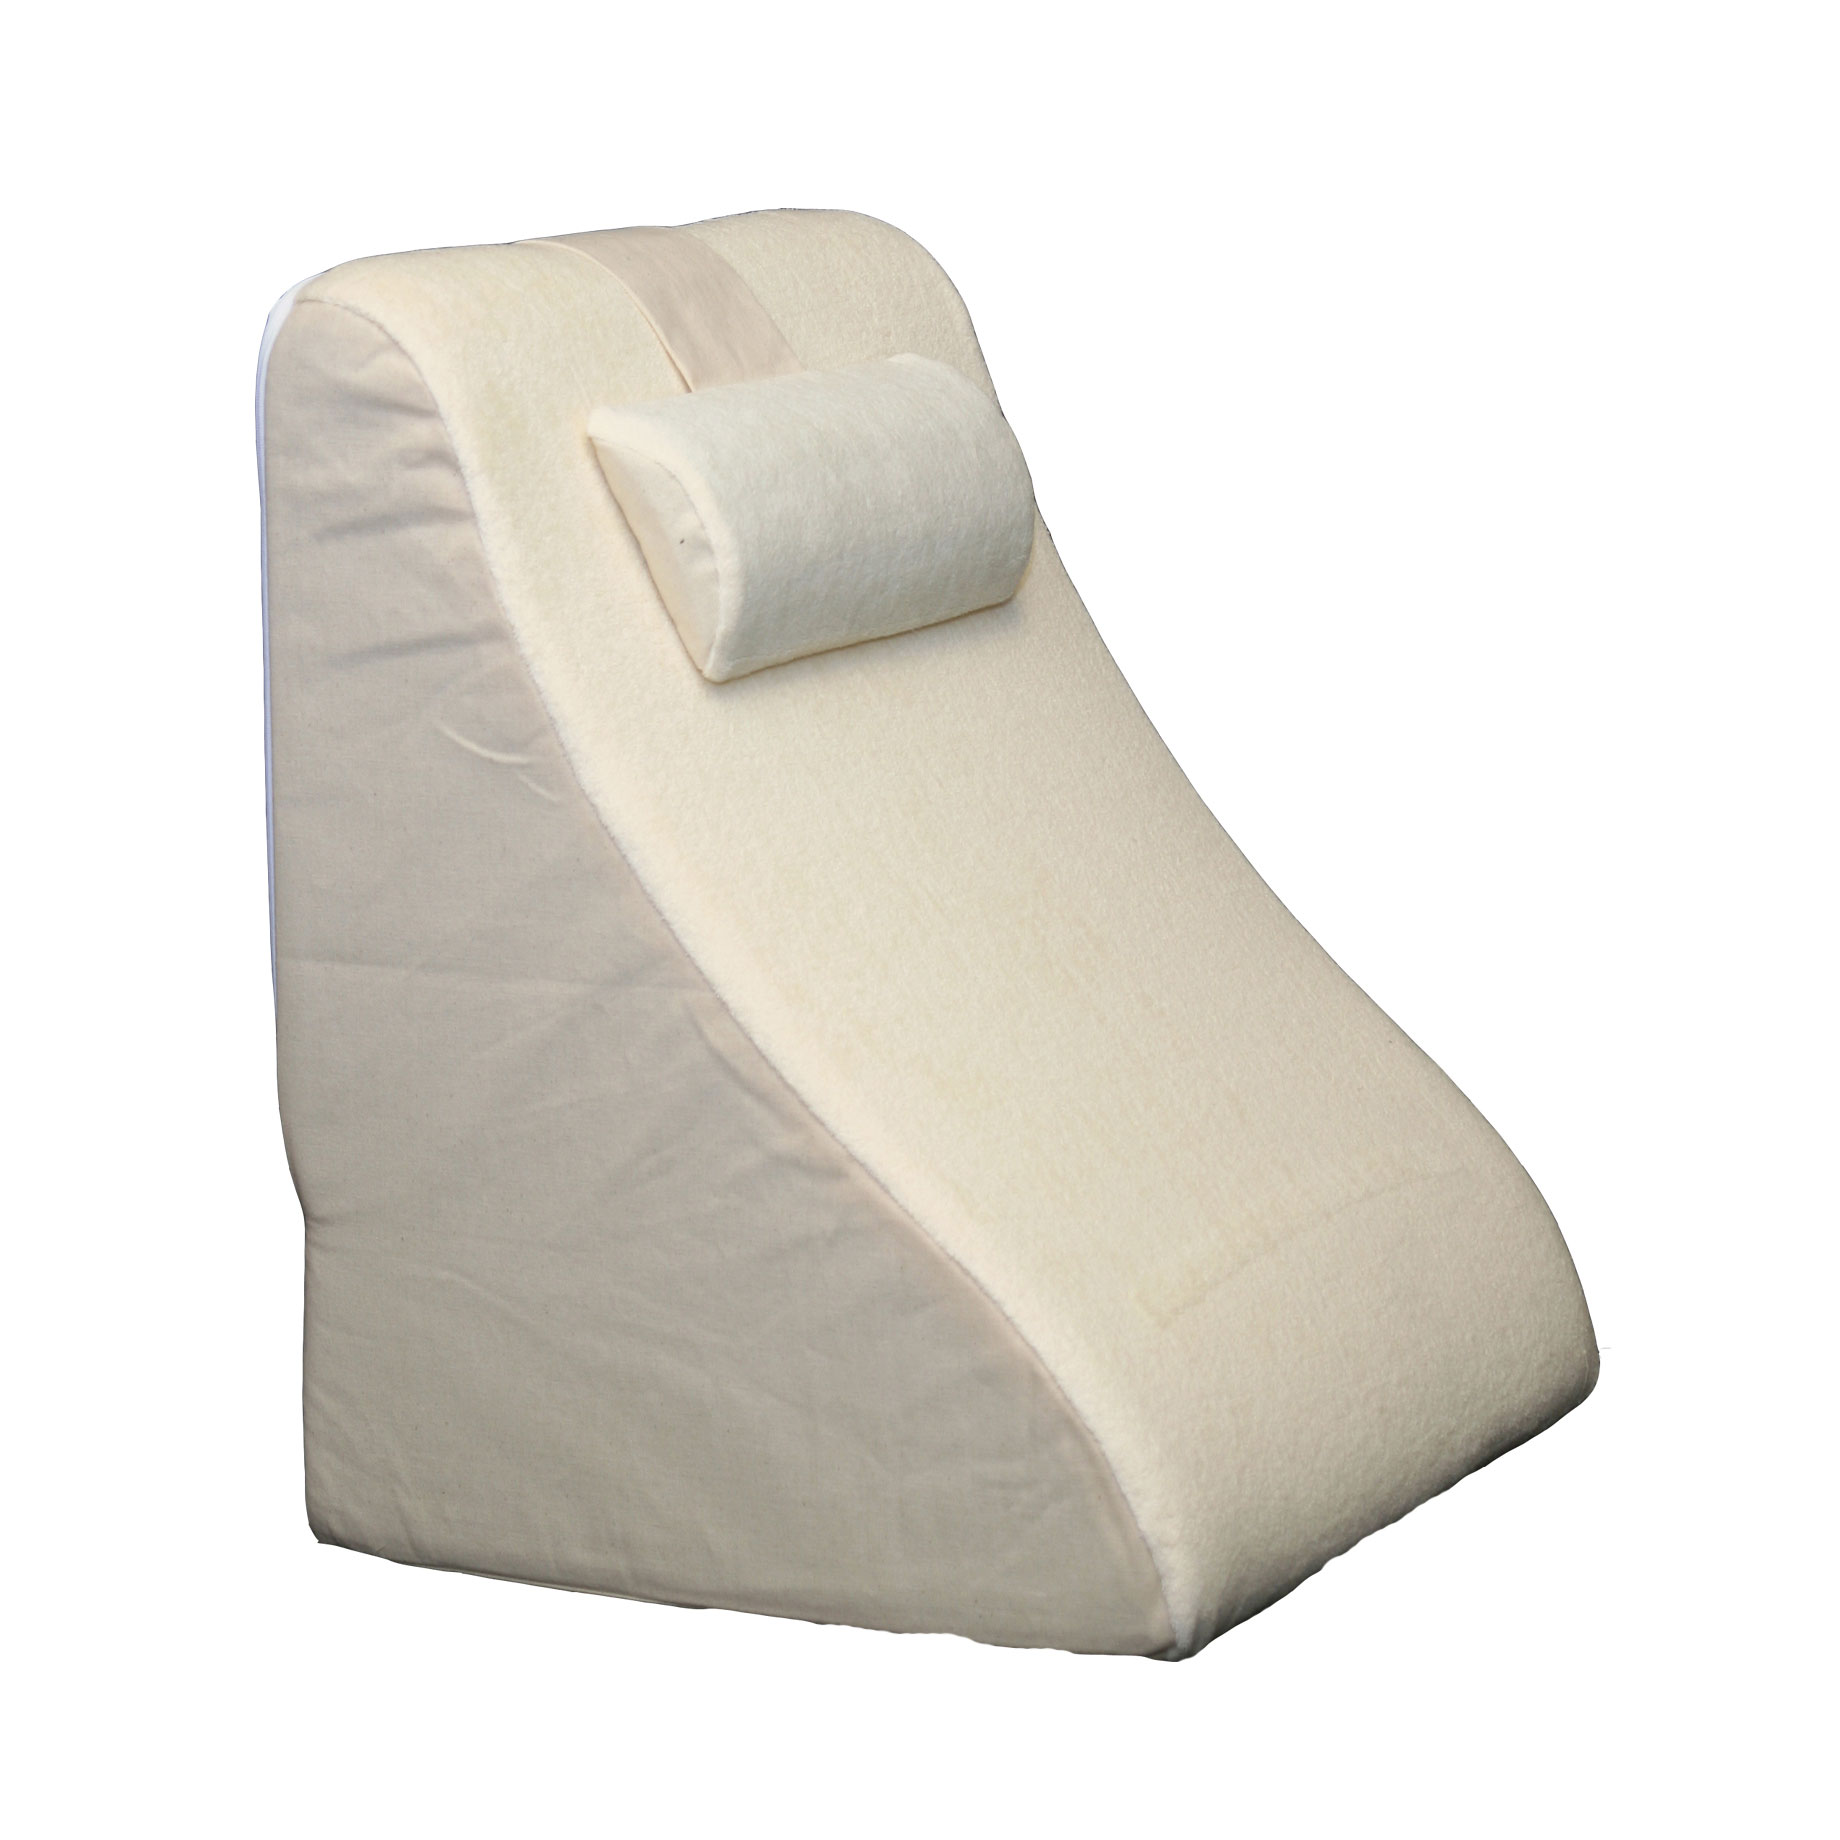 br2500bw - betterrest deluxe memory foam bed wedge - jobri